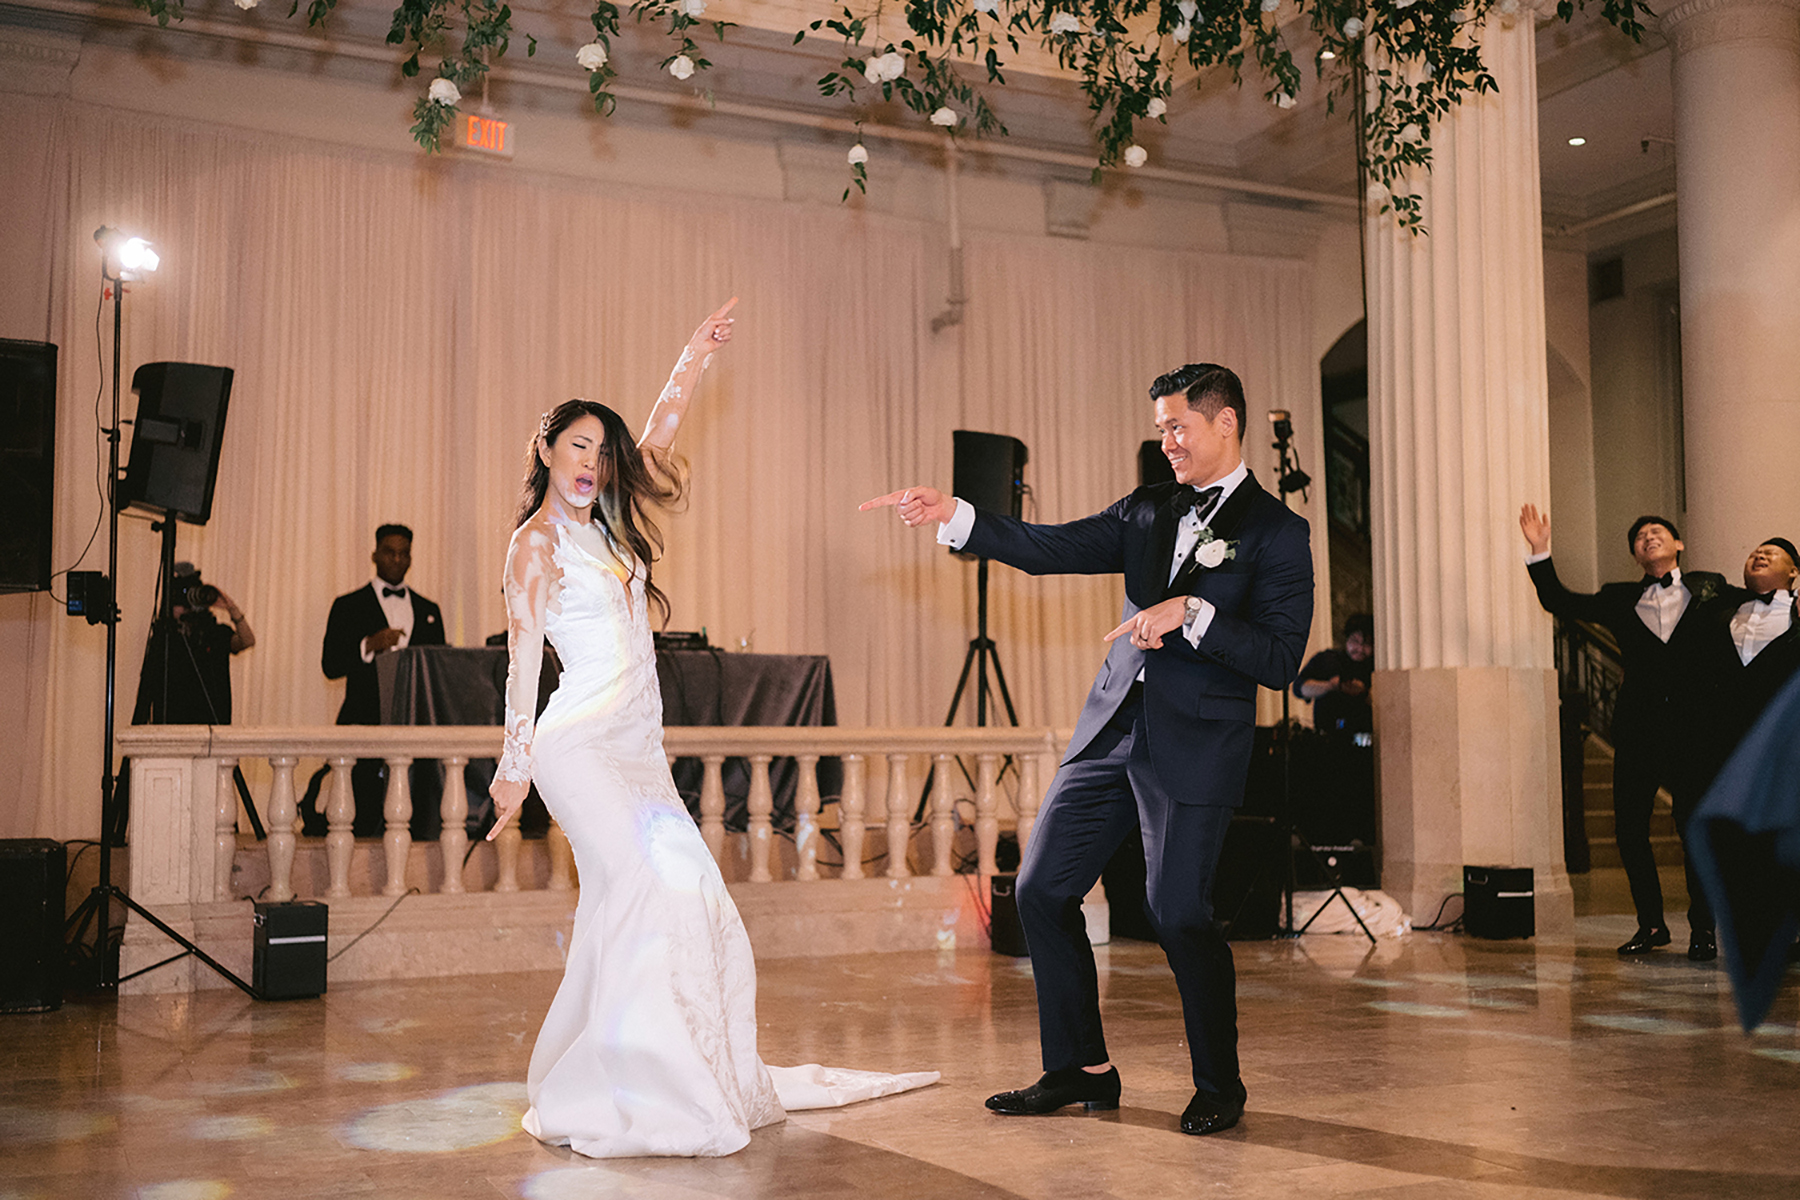 cute dancing photo of newlywed couple